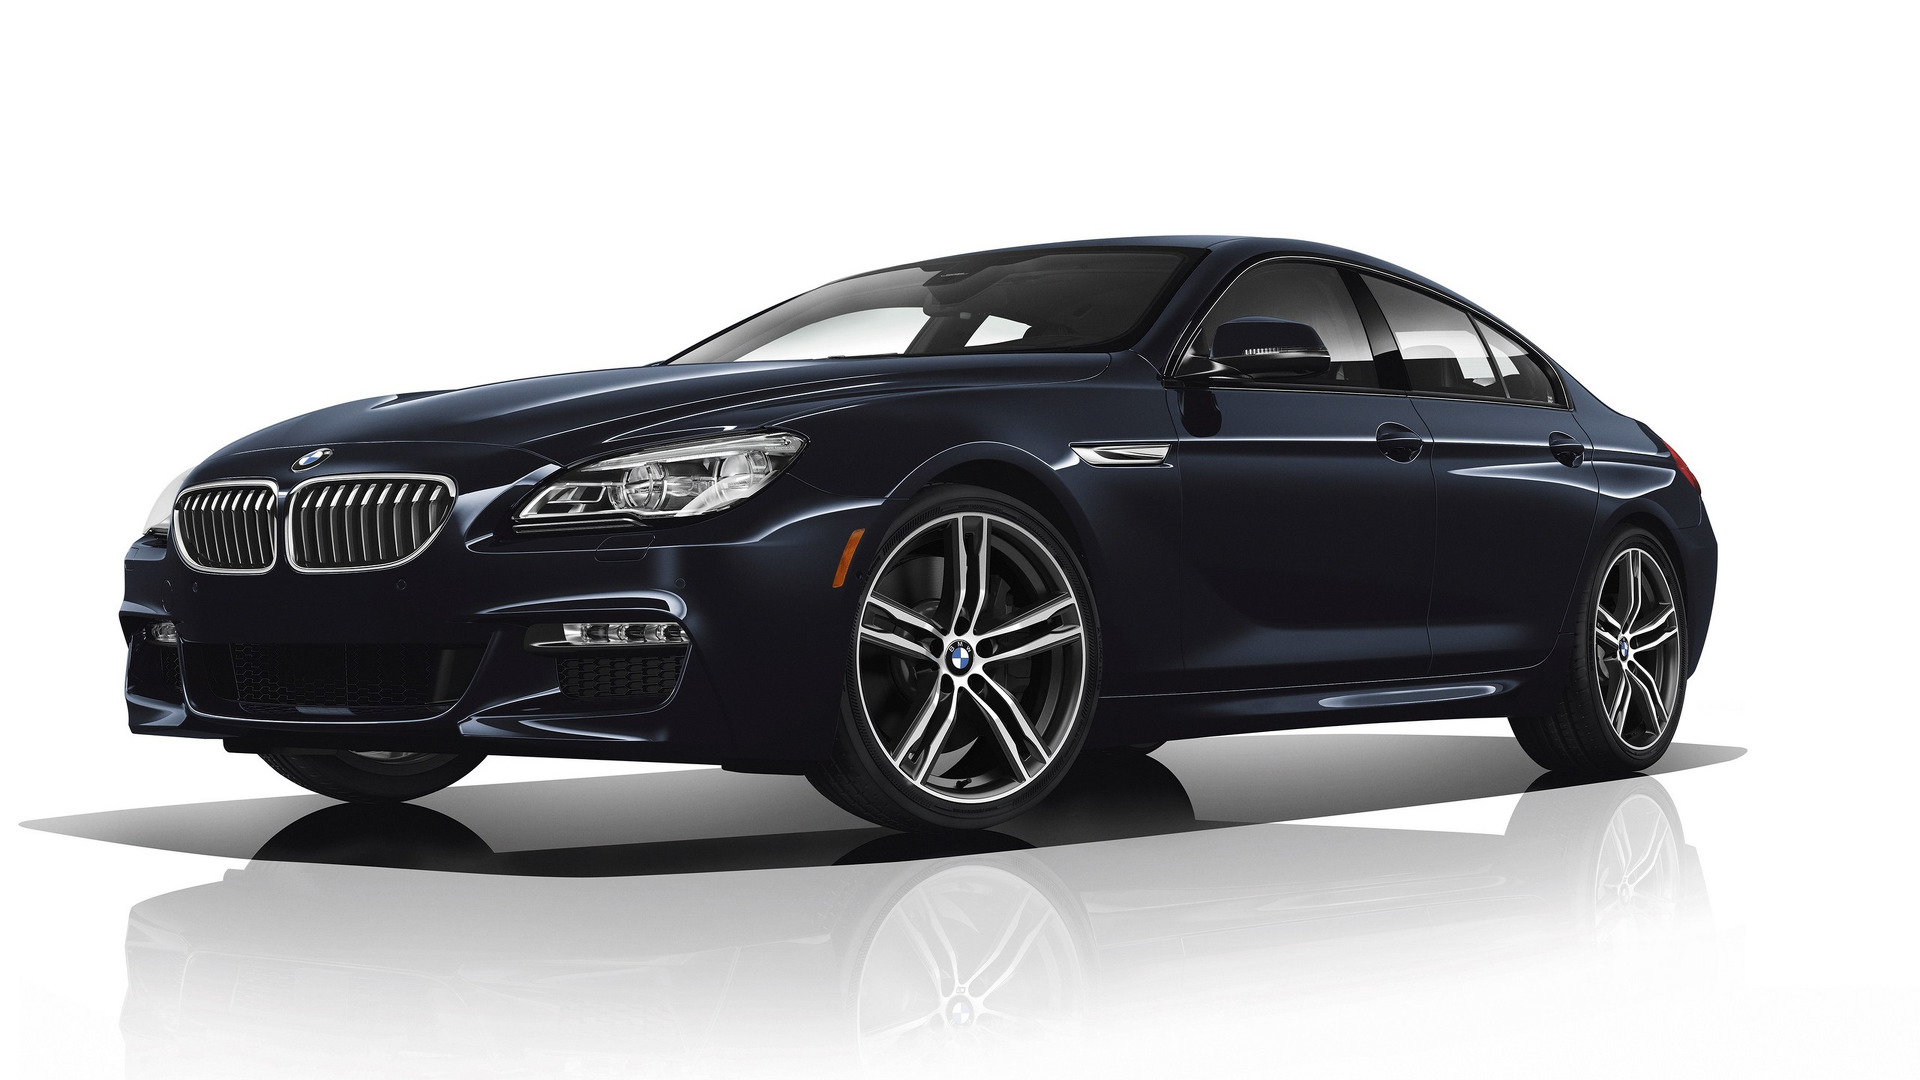 2018 BMW 6 Series Refreshed For US With Cosmetic Tweaks